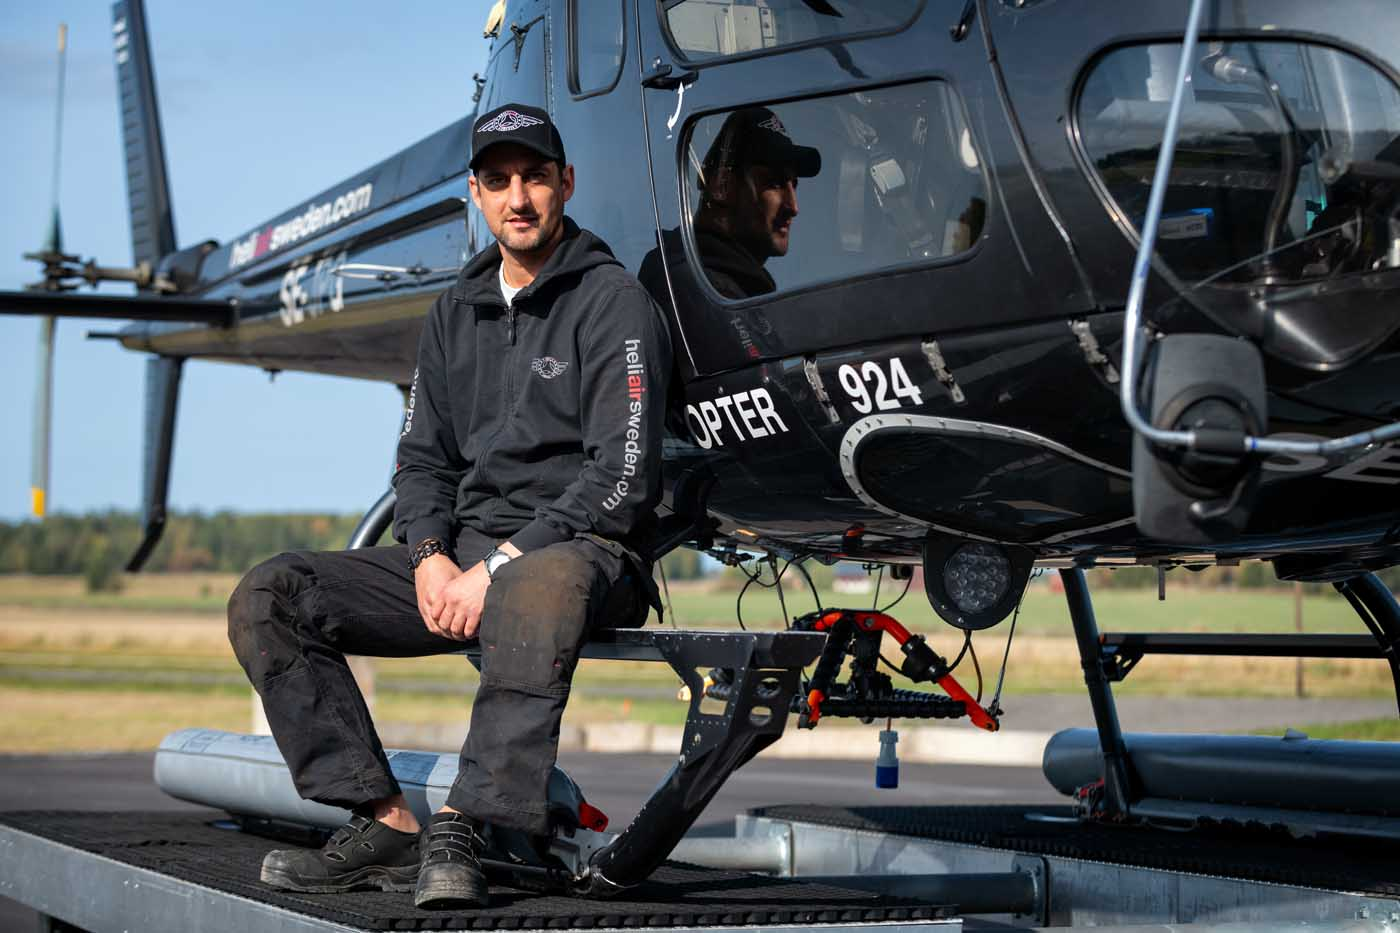 HeliAir Sweden has grown every year in the decade it has been operating commercially, a feat its founder says is all down to team spirit.